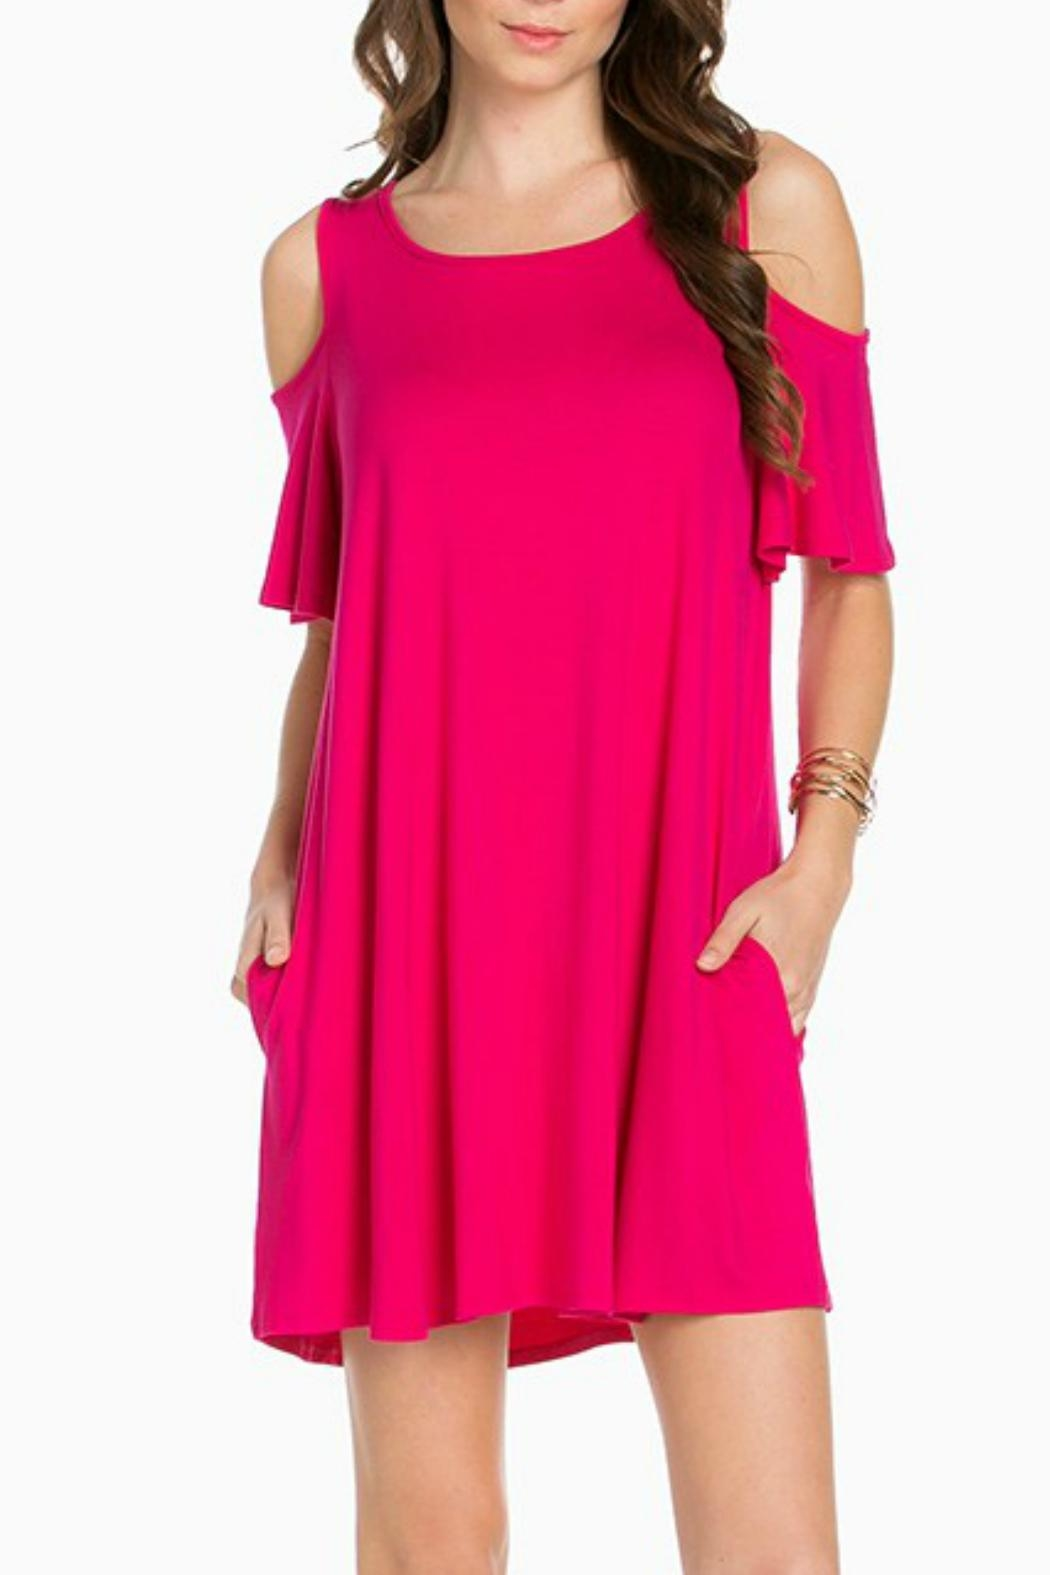 391cc13743b129 Sweet Pea Cold Shoulder Fuschia Dress from Oklahoma by Simply ...